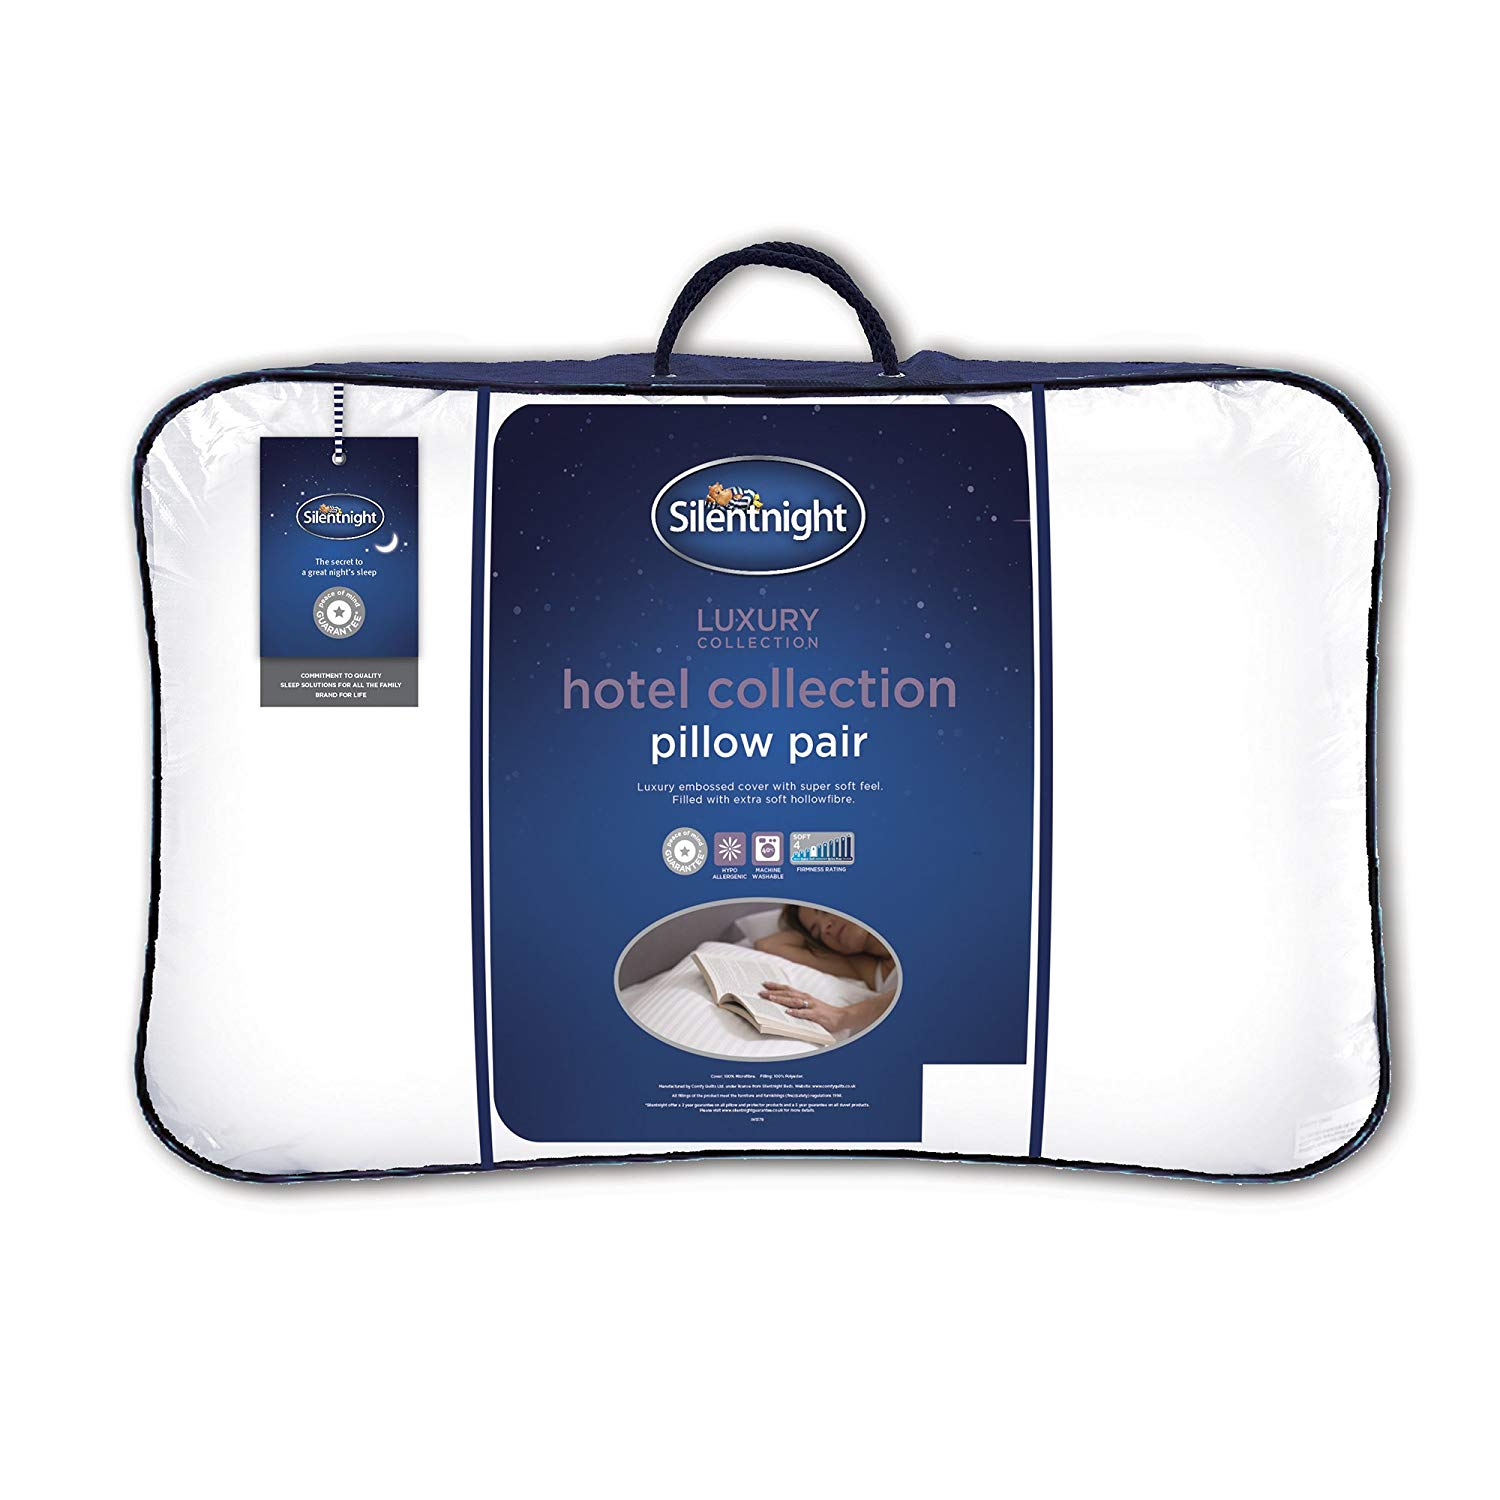 Silentnight Hotel Collection Pillow – Pack of 2 for £12 at Amazon